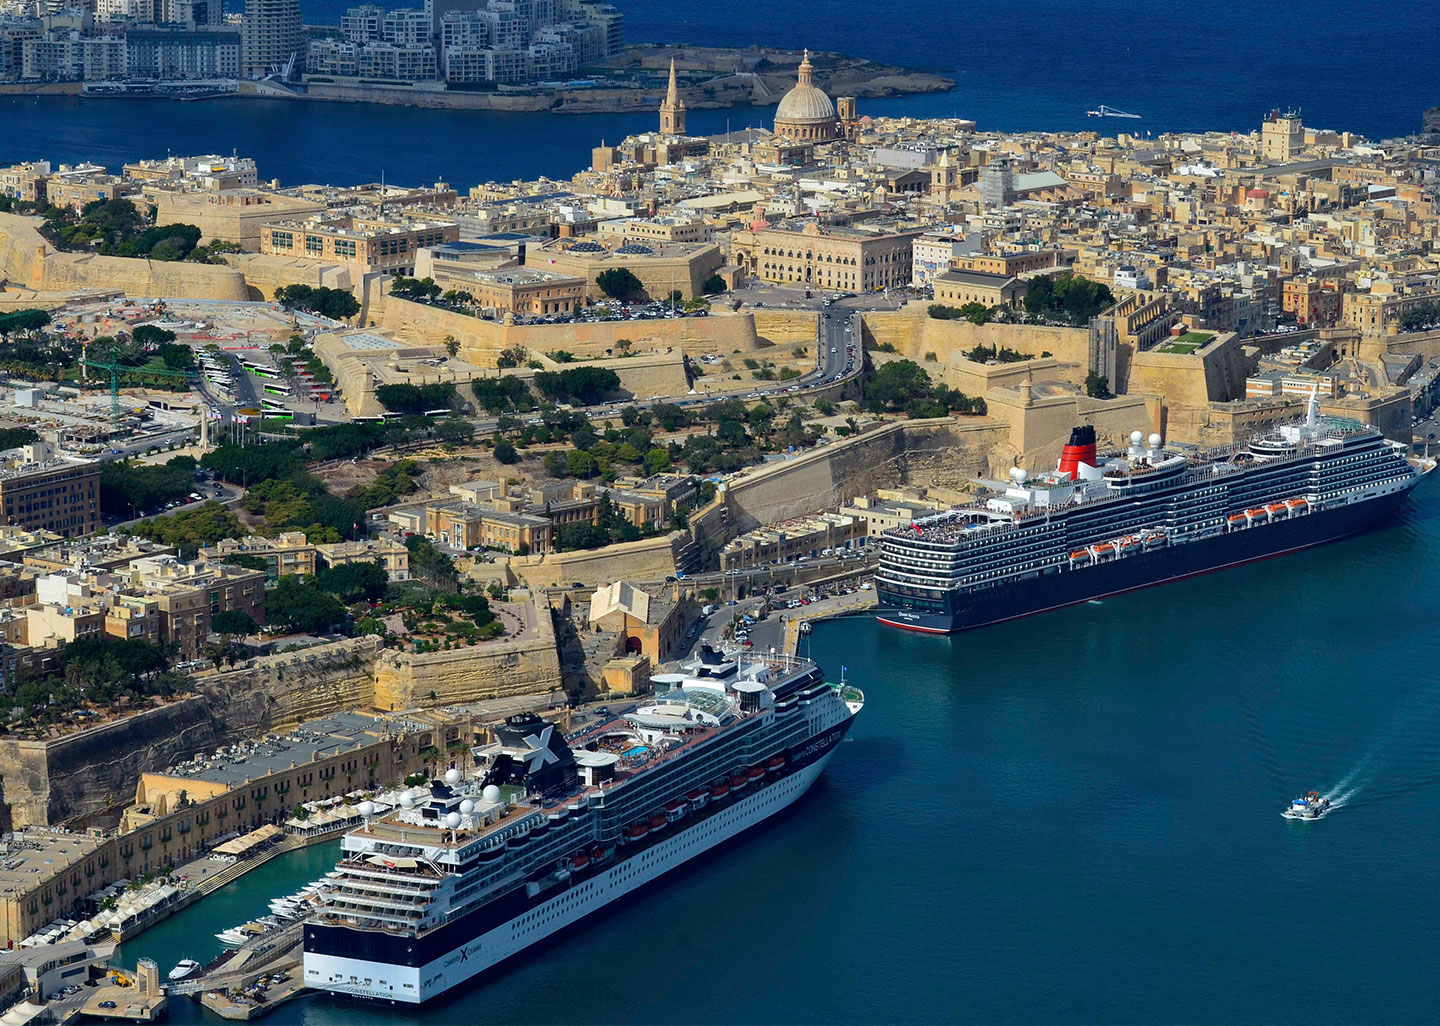 Guest experience is key to success in cruise industry - Valletta Cruise Port CEO